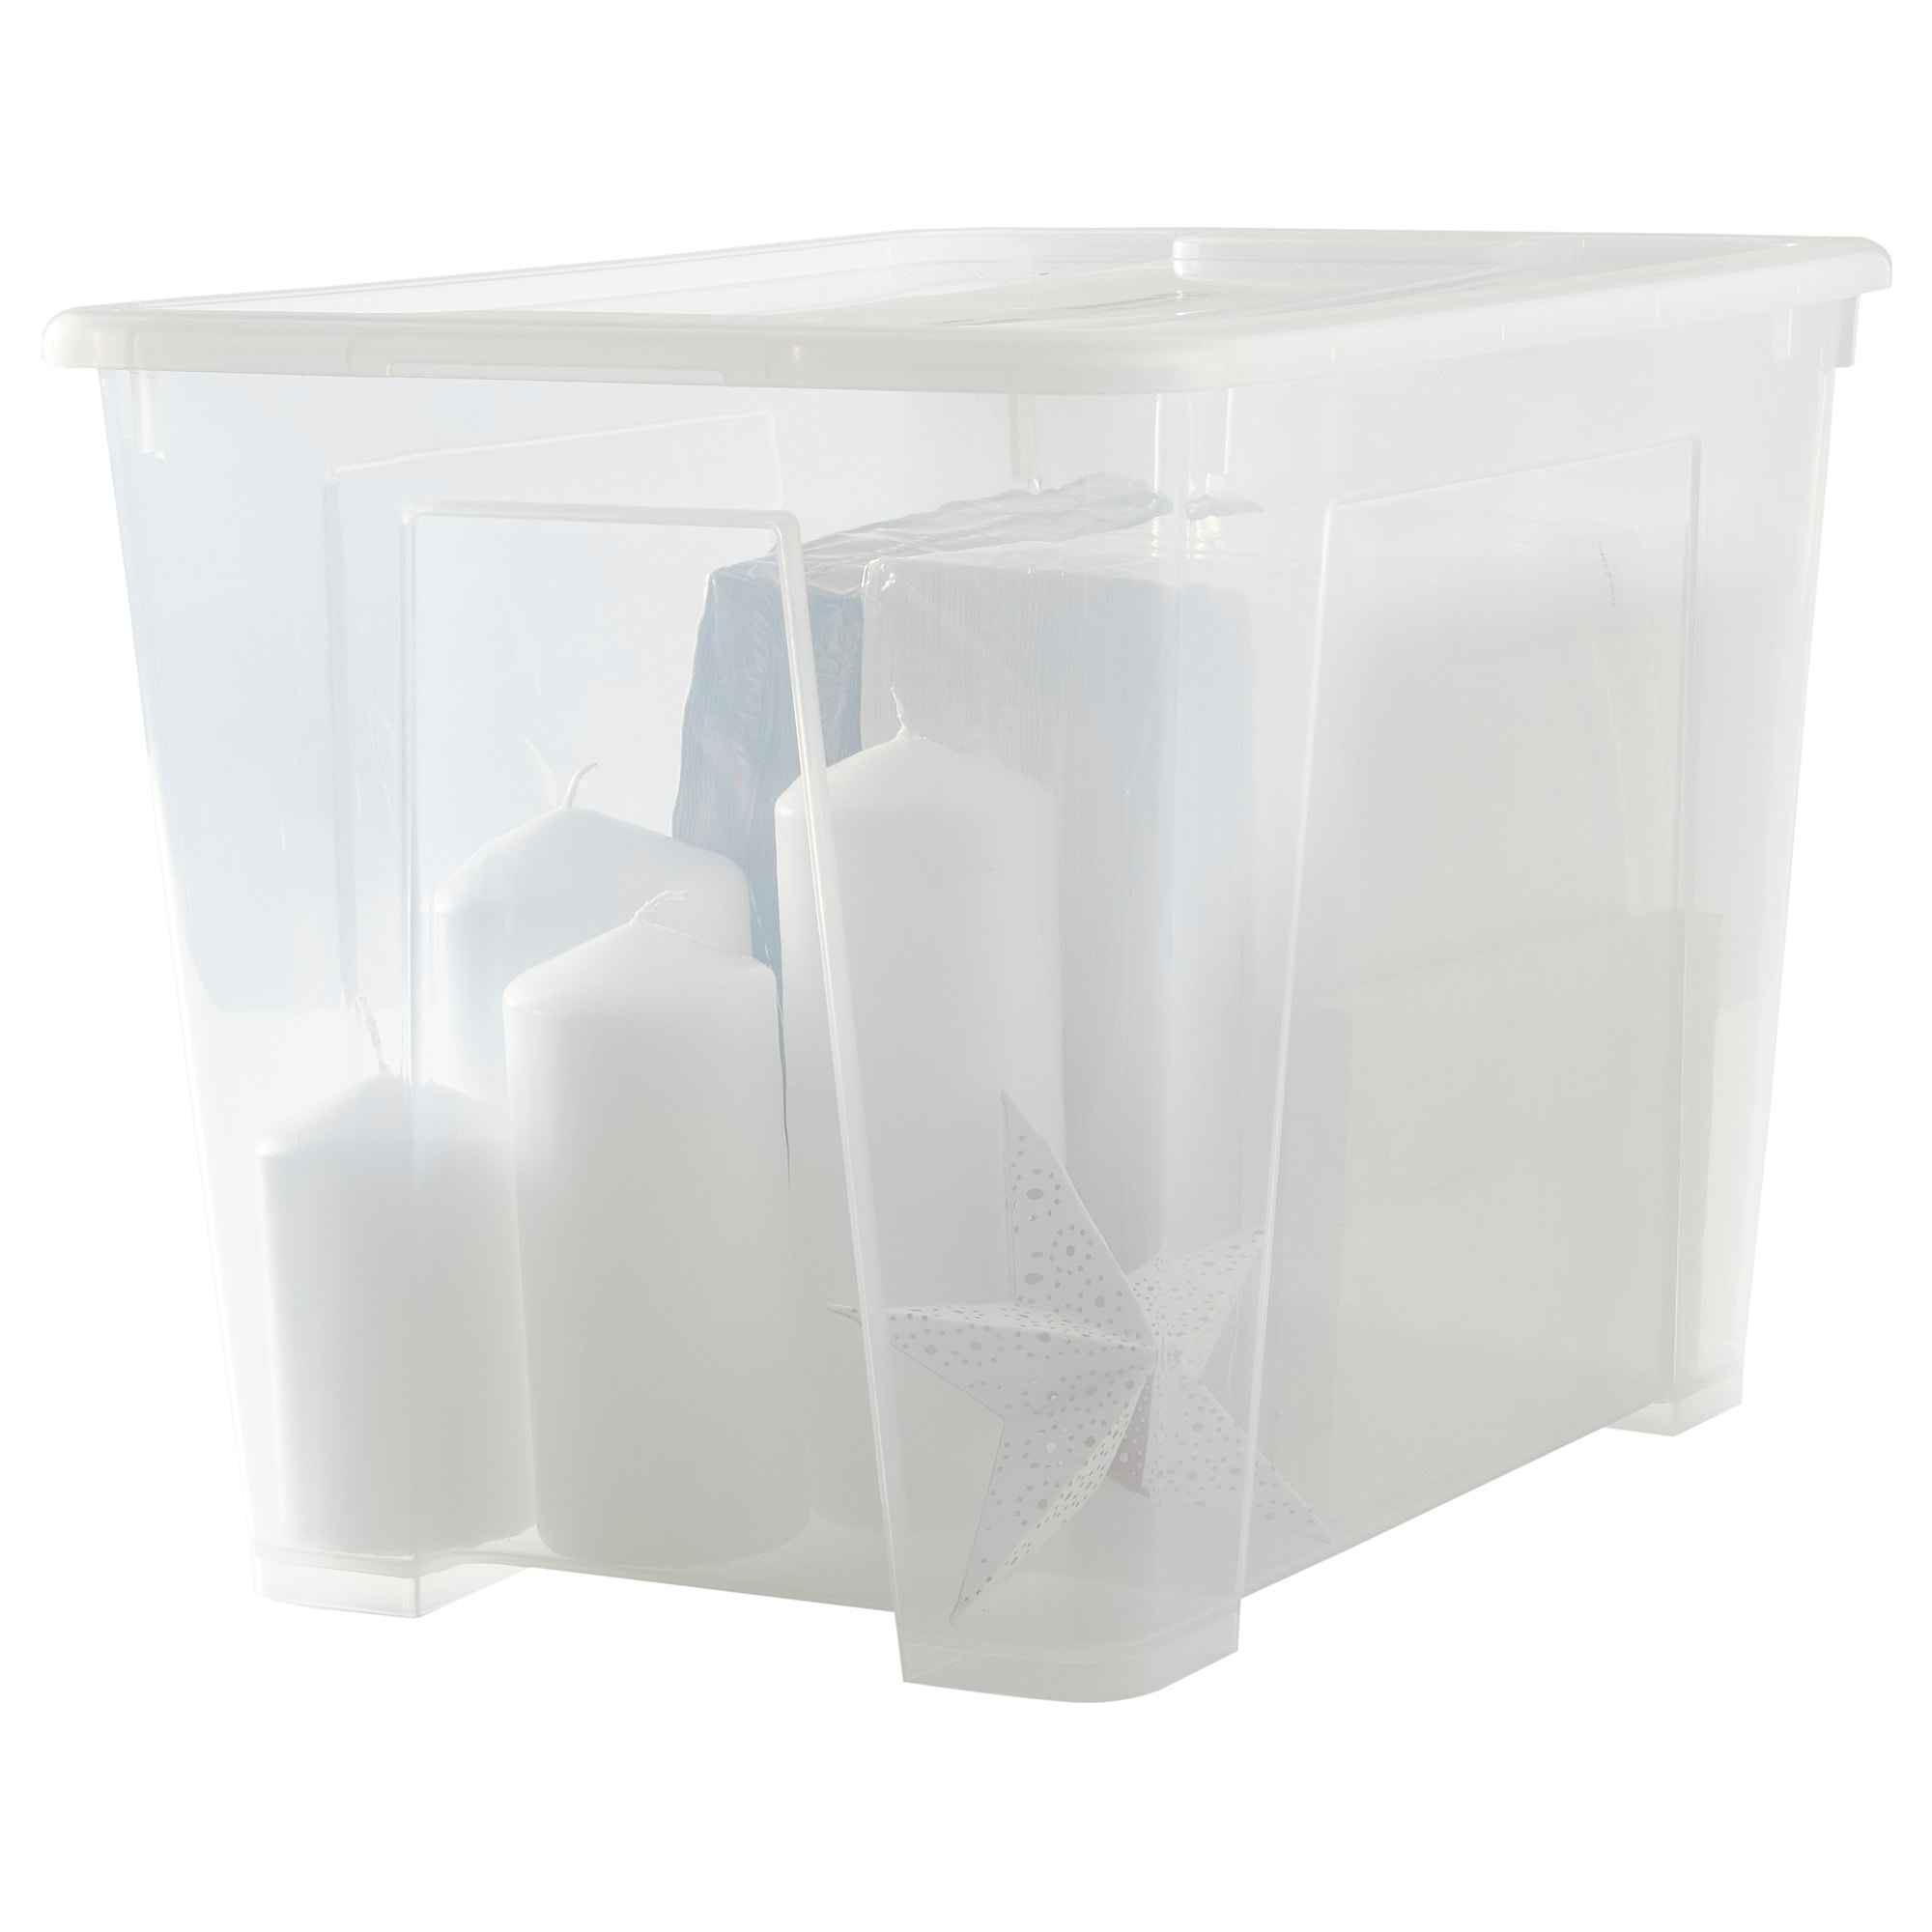 Aufbewahrungsbox Ikea Expedit Samla Box With Lid Clear